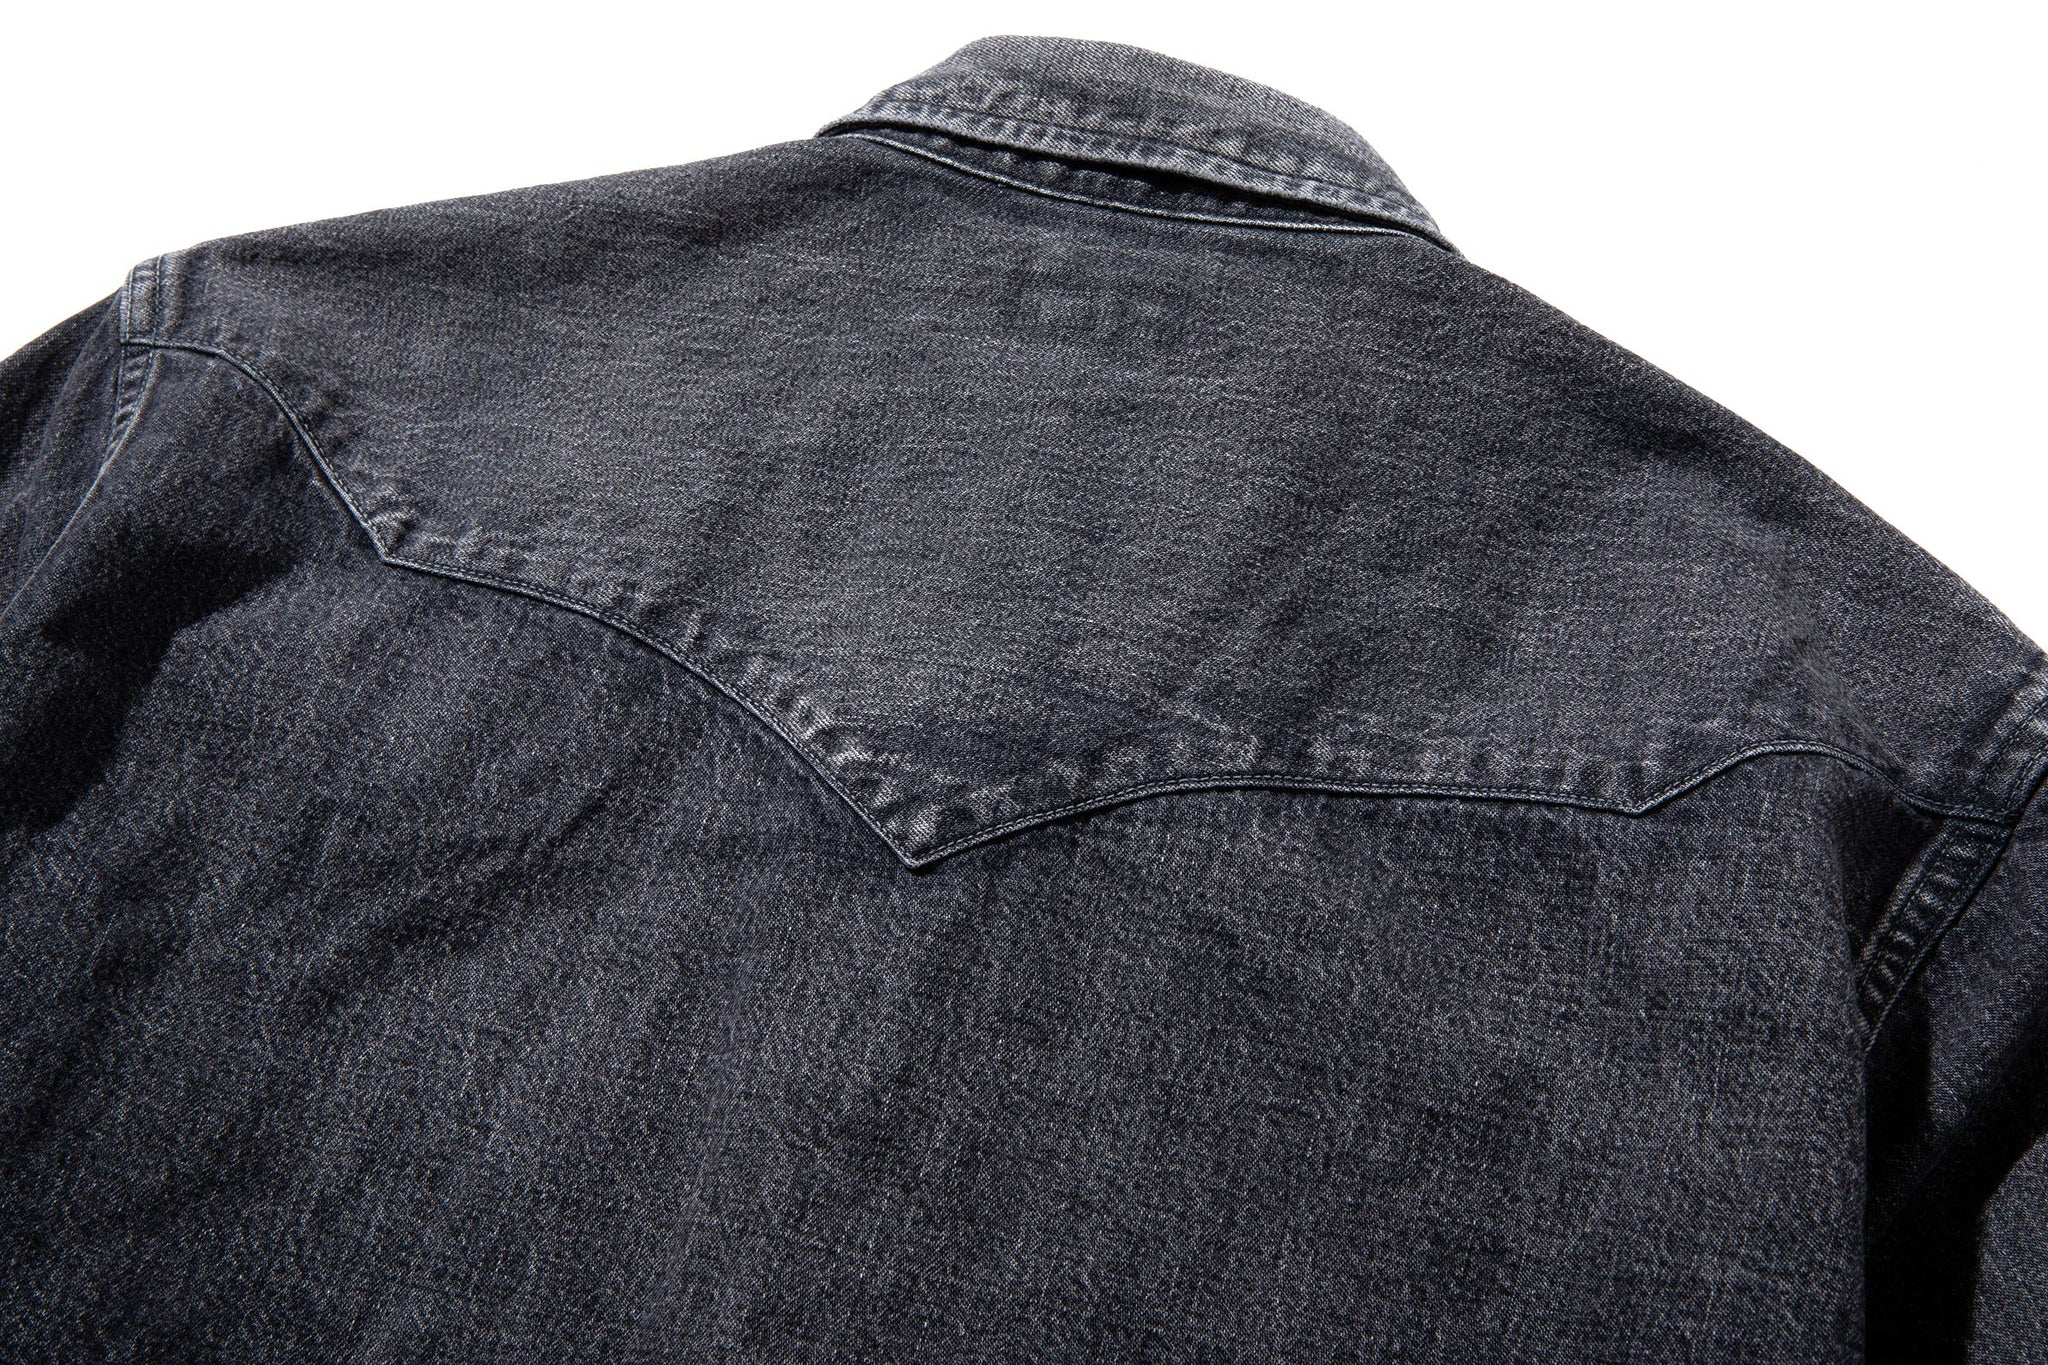 JOE McCOY BLACK DENIM WESTERN SHIRT / WASHED